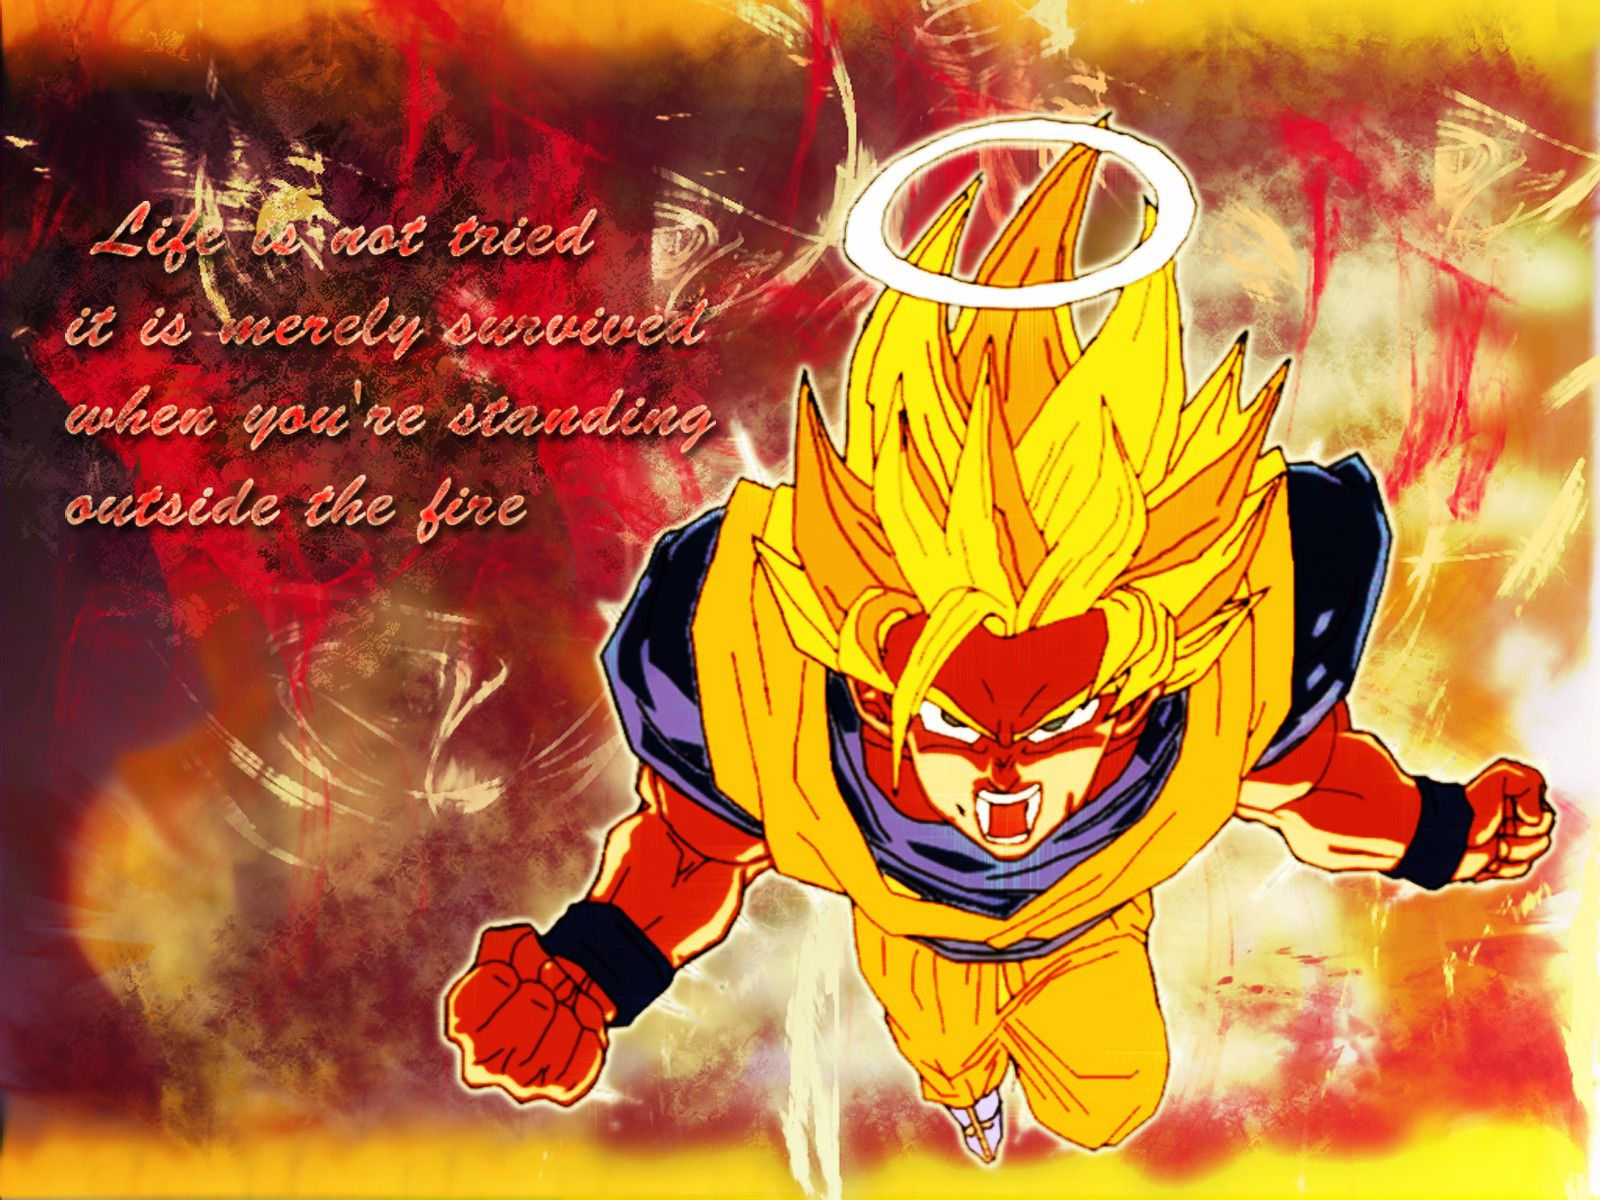 Awesome dbz wallpapers wallpapersafari - Images dragon ball z ...